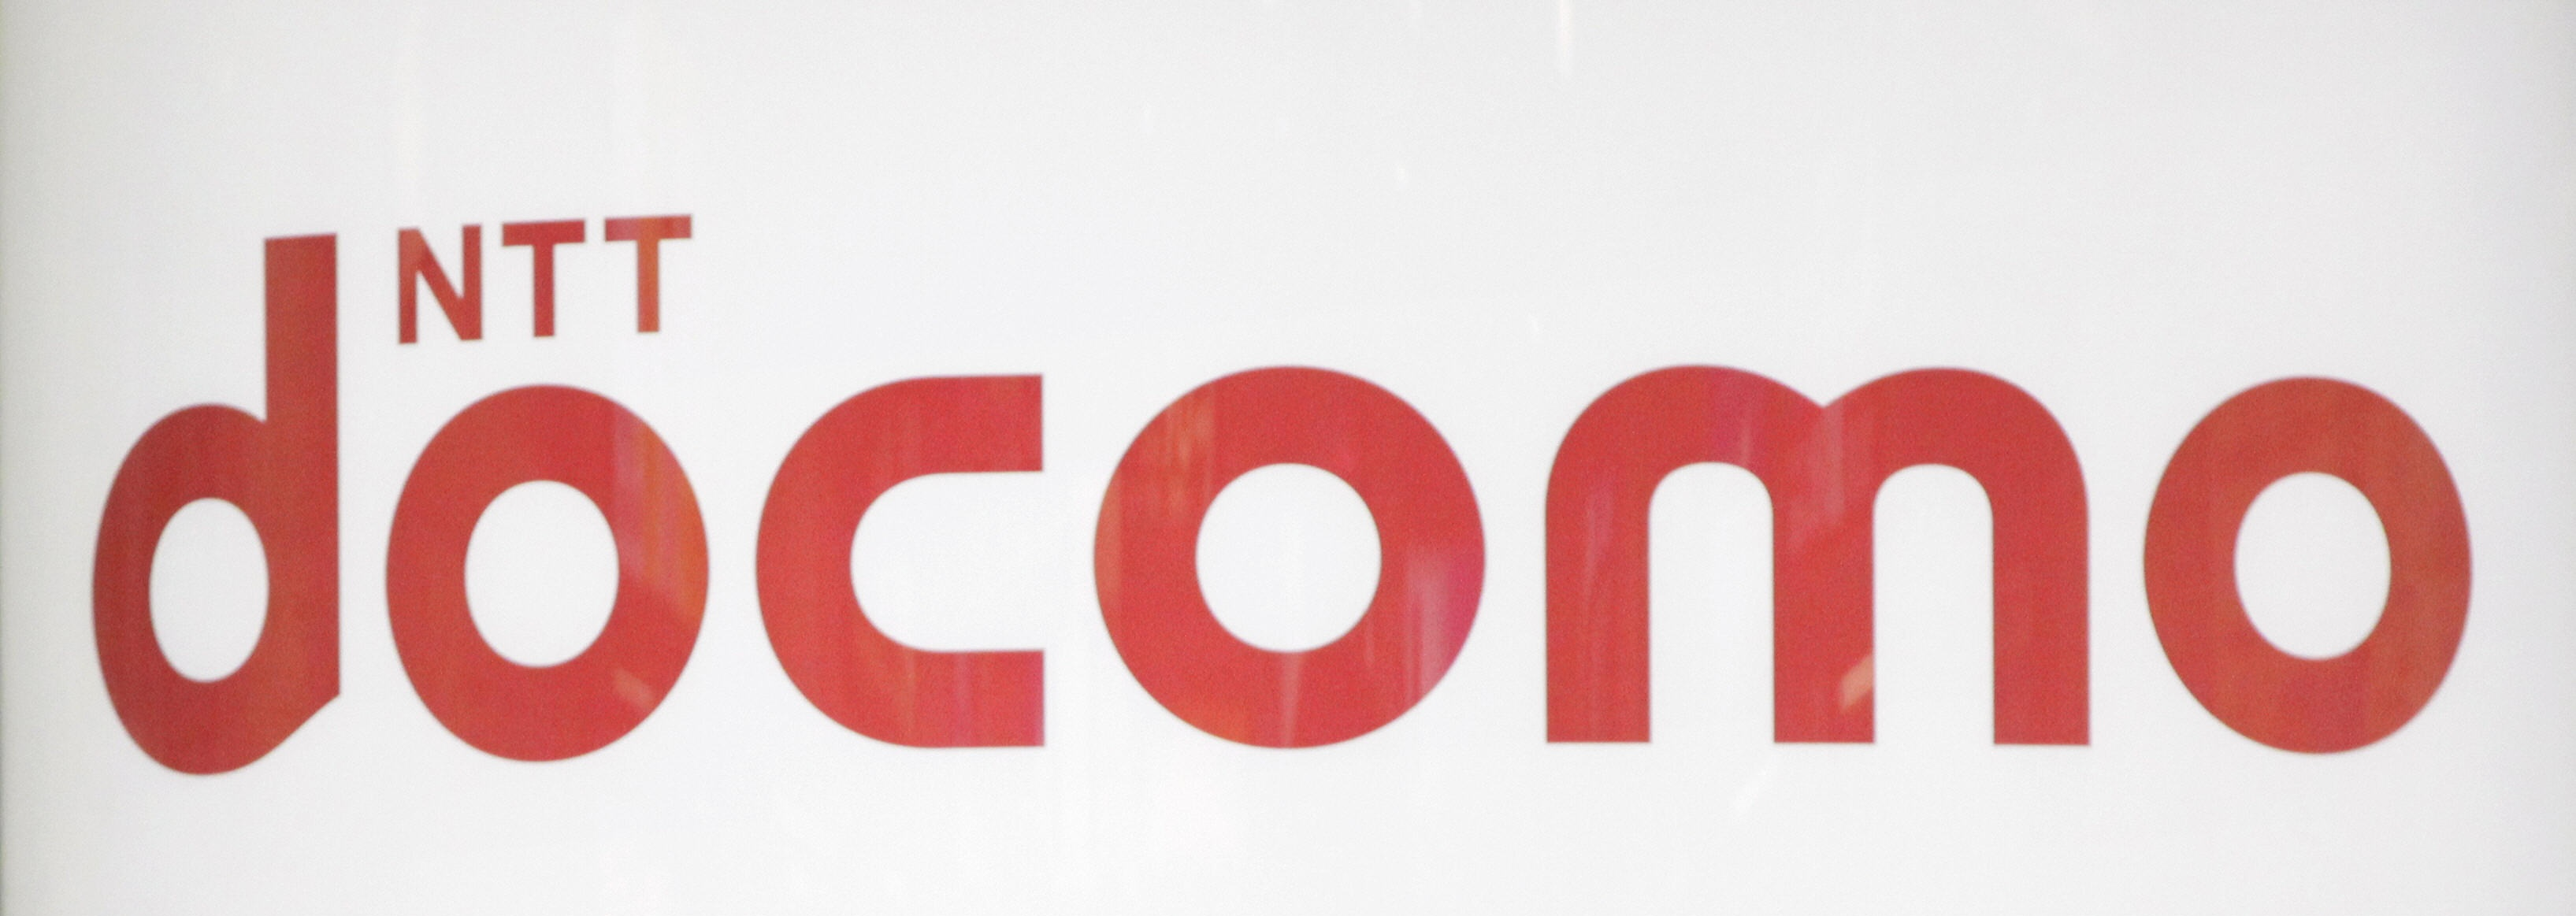 NTT DoCoMo to launch $125 million Japan-focused startup fund and incubator program in 2013